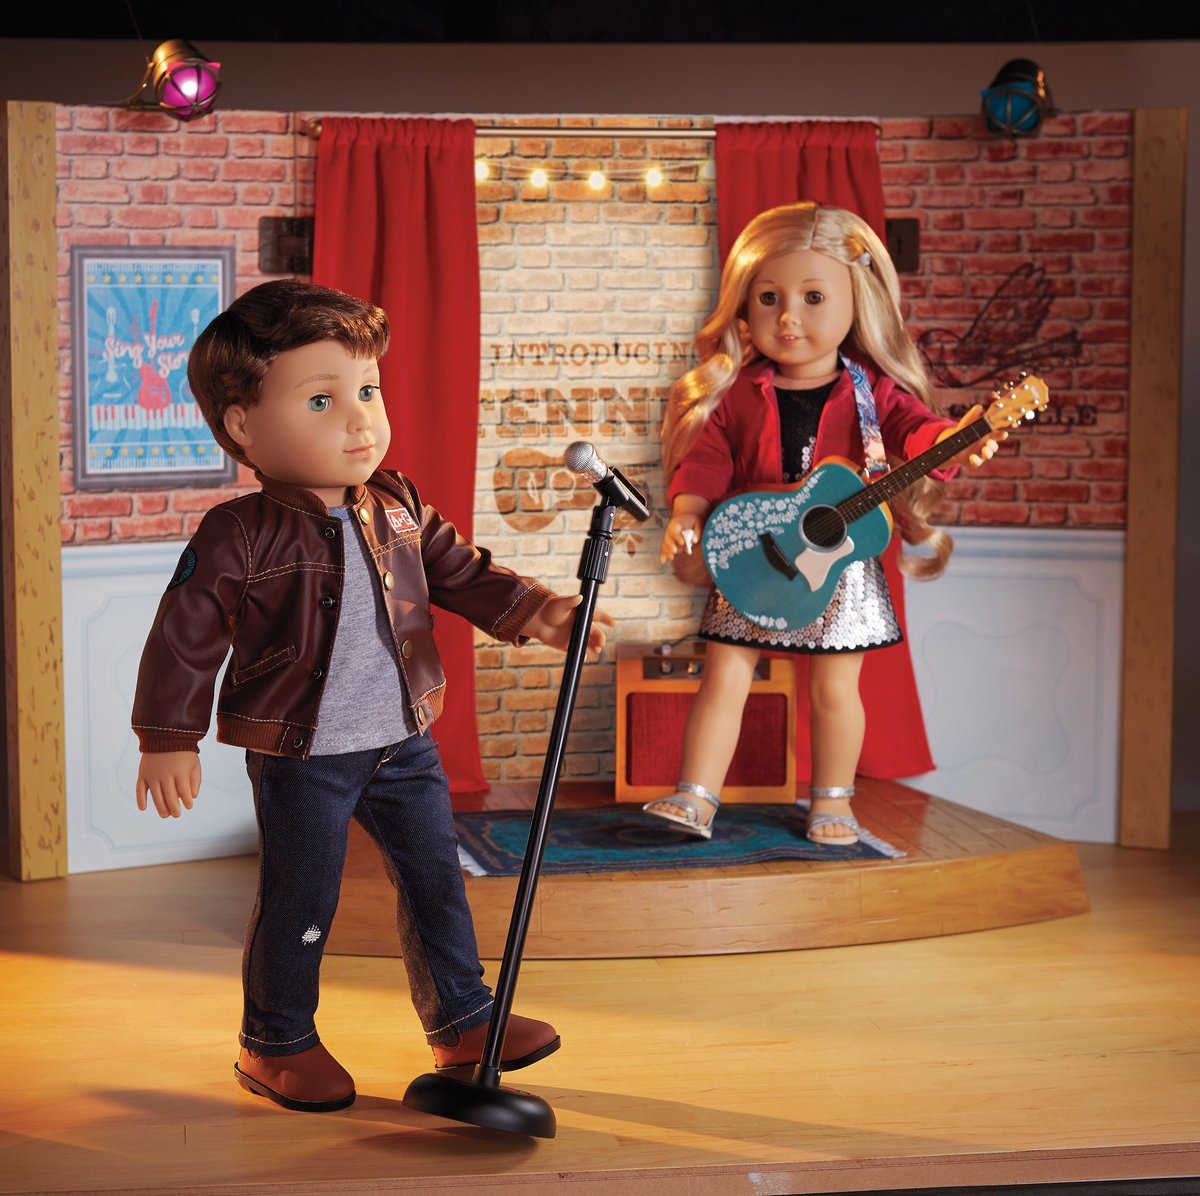 Enter to #win your choice of Tenney or Logan from @American_Girl Doll #Giveaway #sweeps https://t.co/f2WUTS0ha3 https://t.co/sjnTrFKQA5